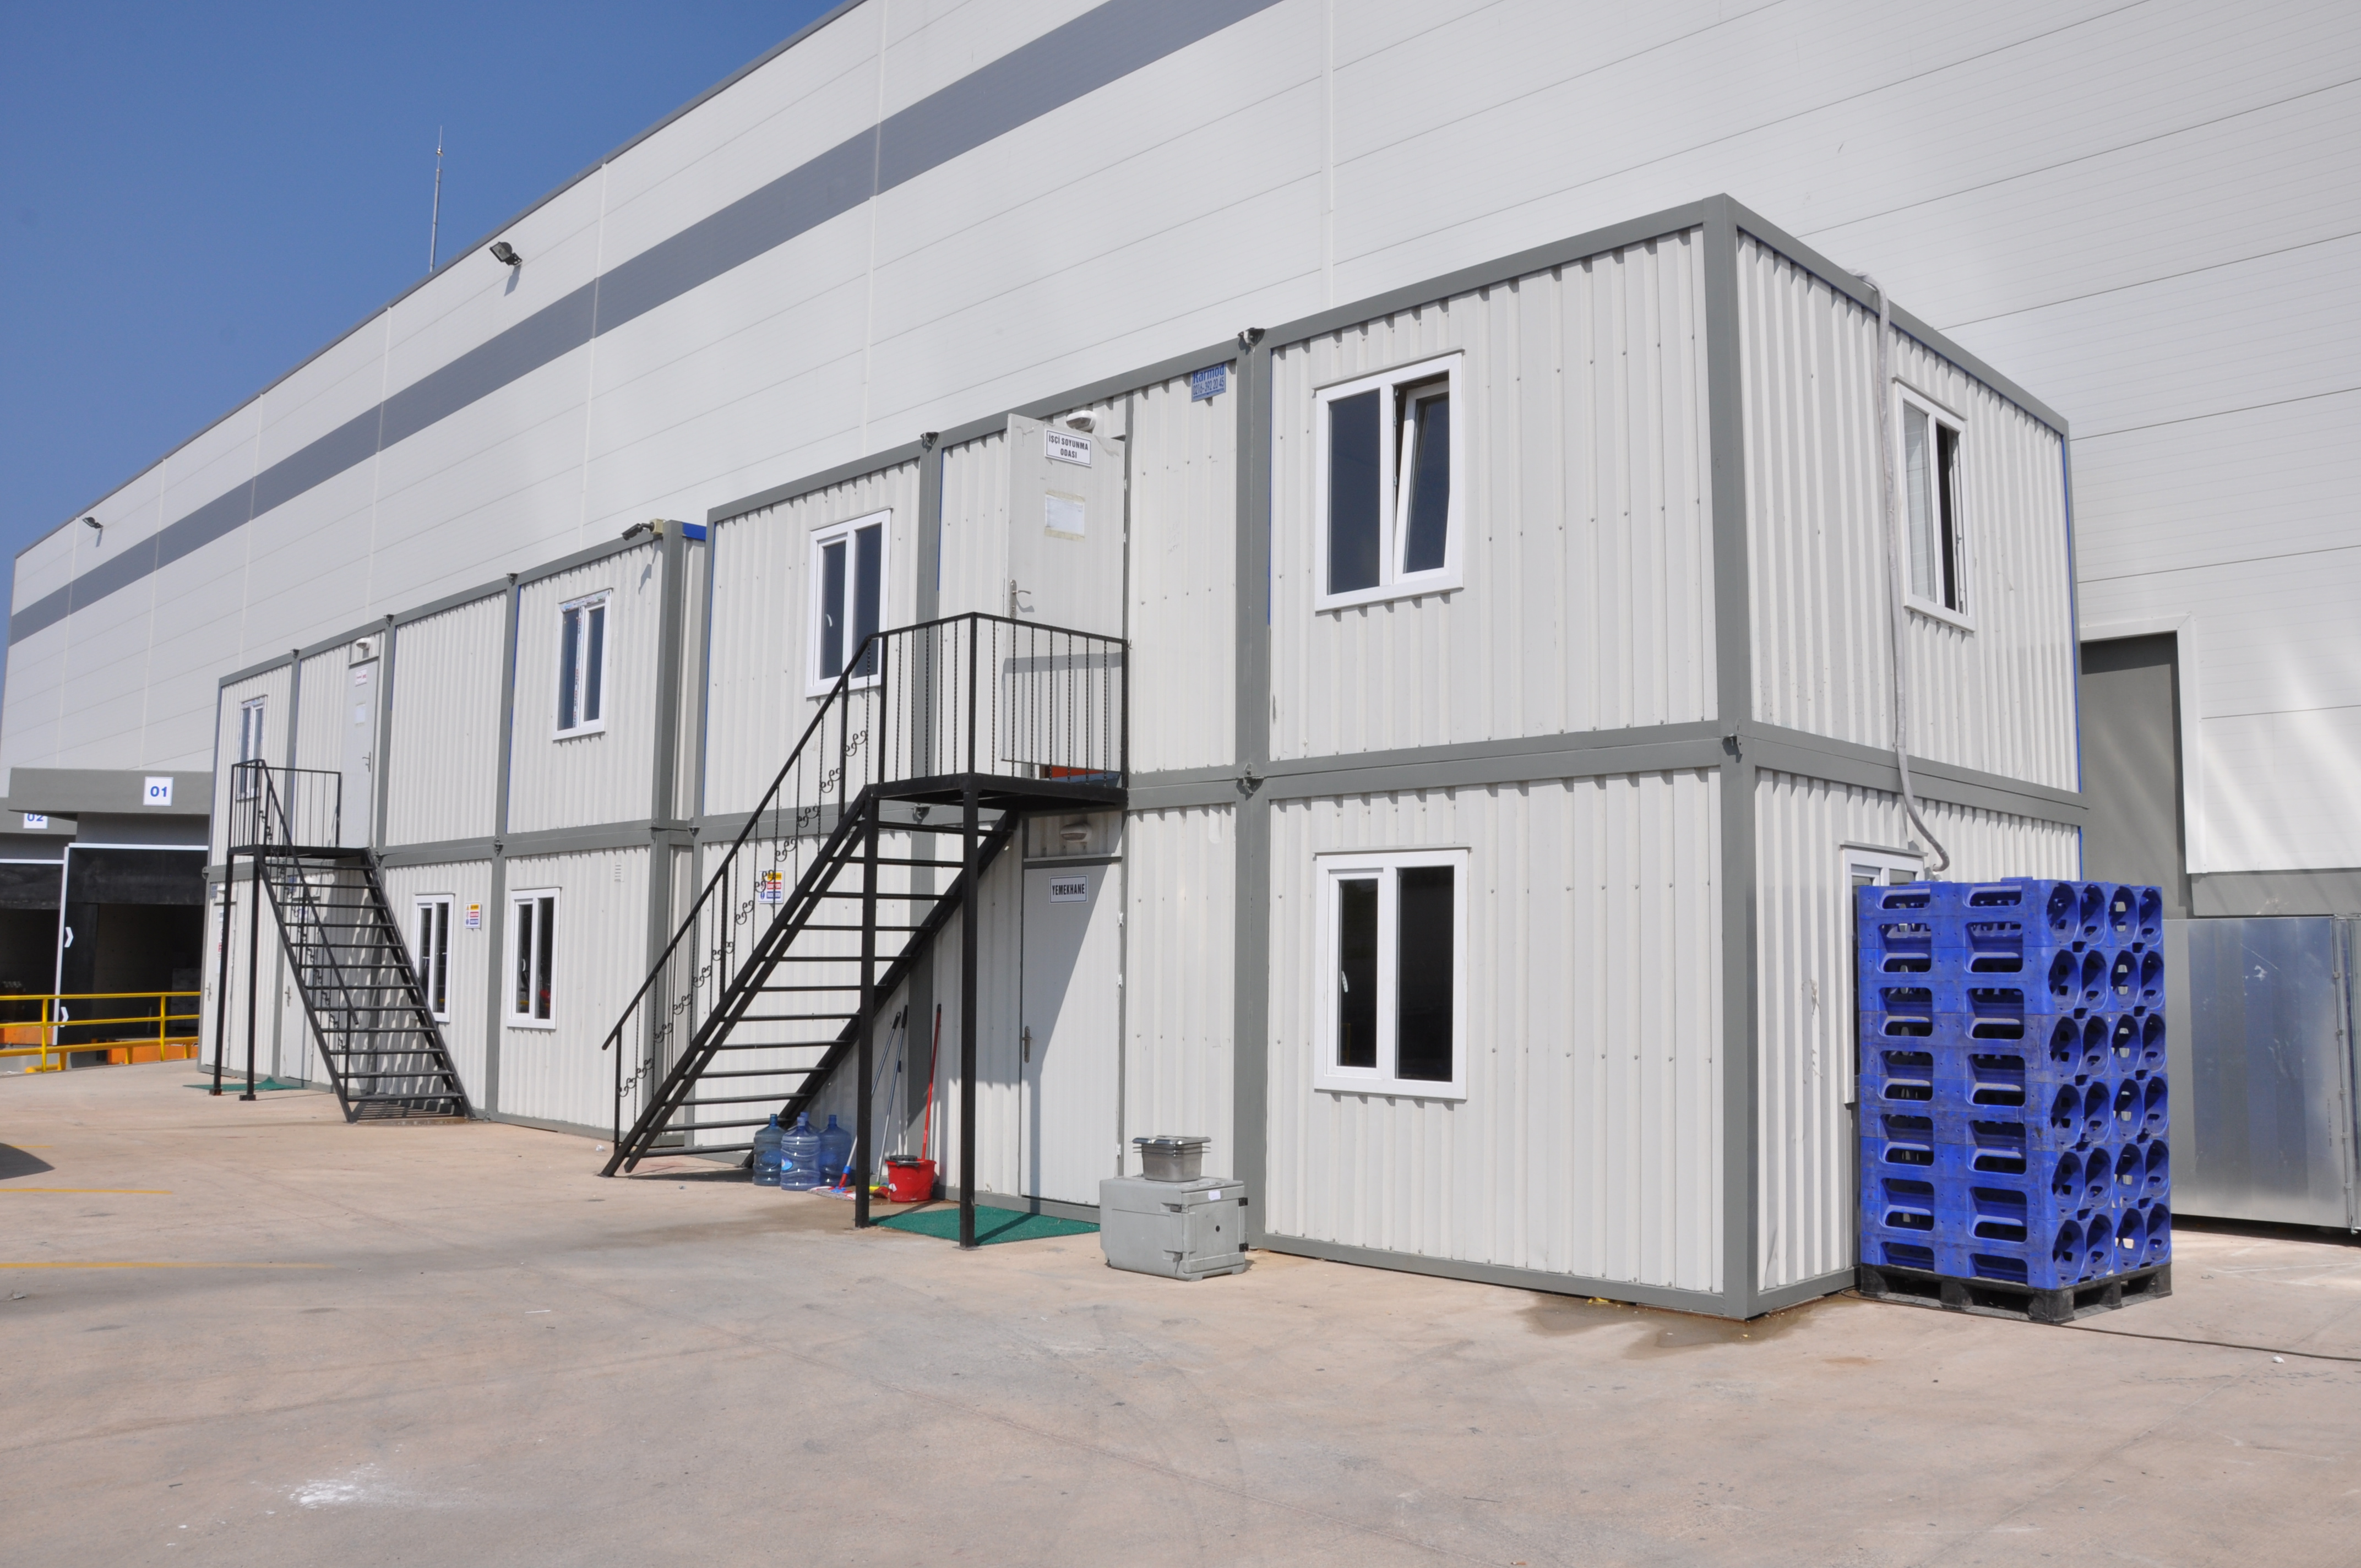 Storage Containers Mobile Offices, Classrooms Storage Trailer | Karmod